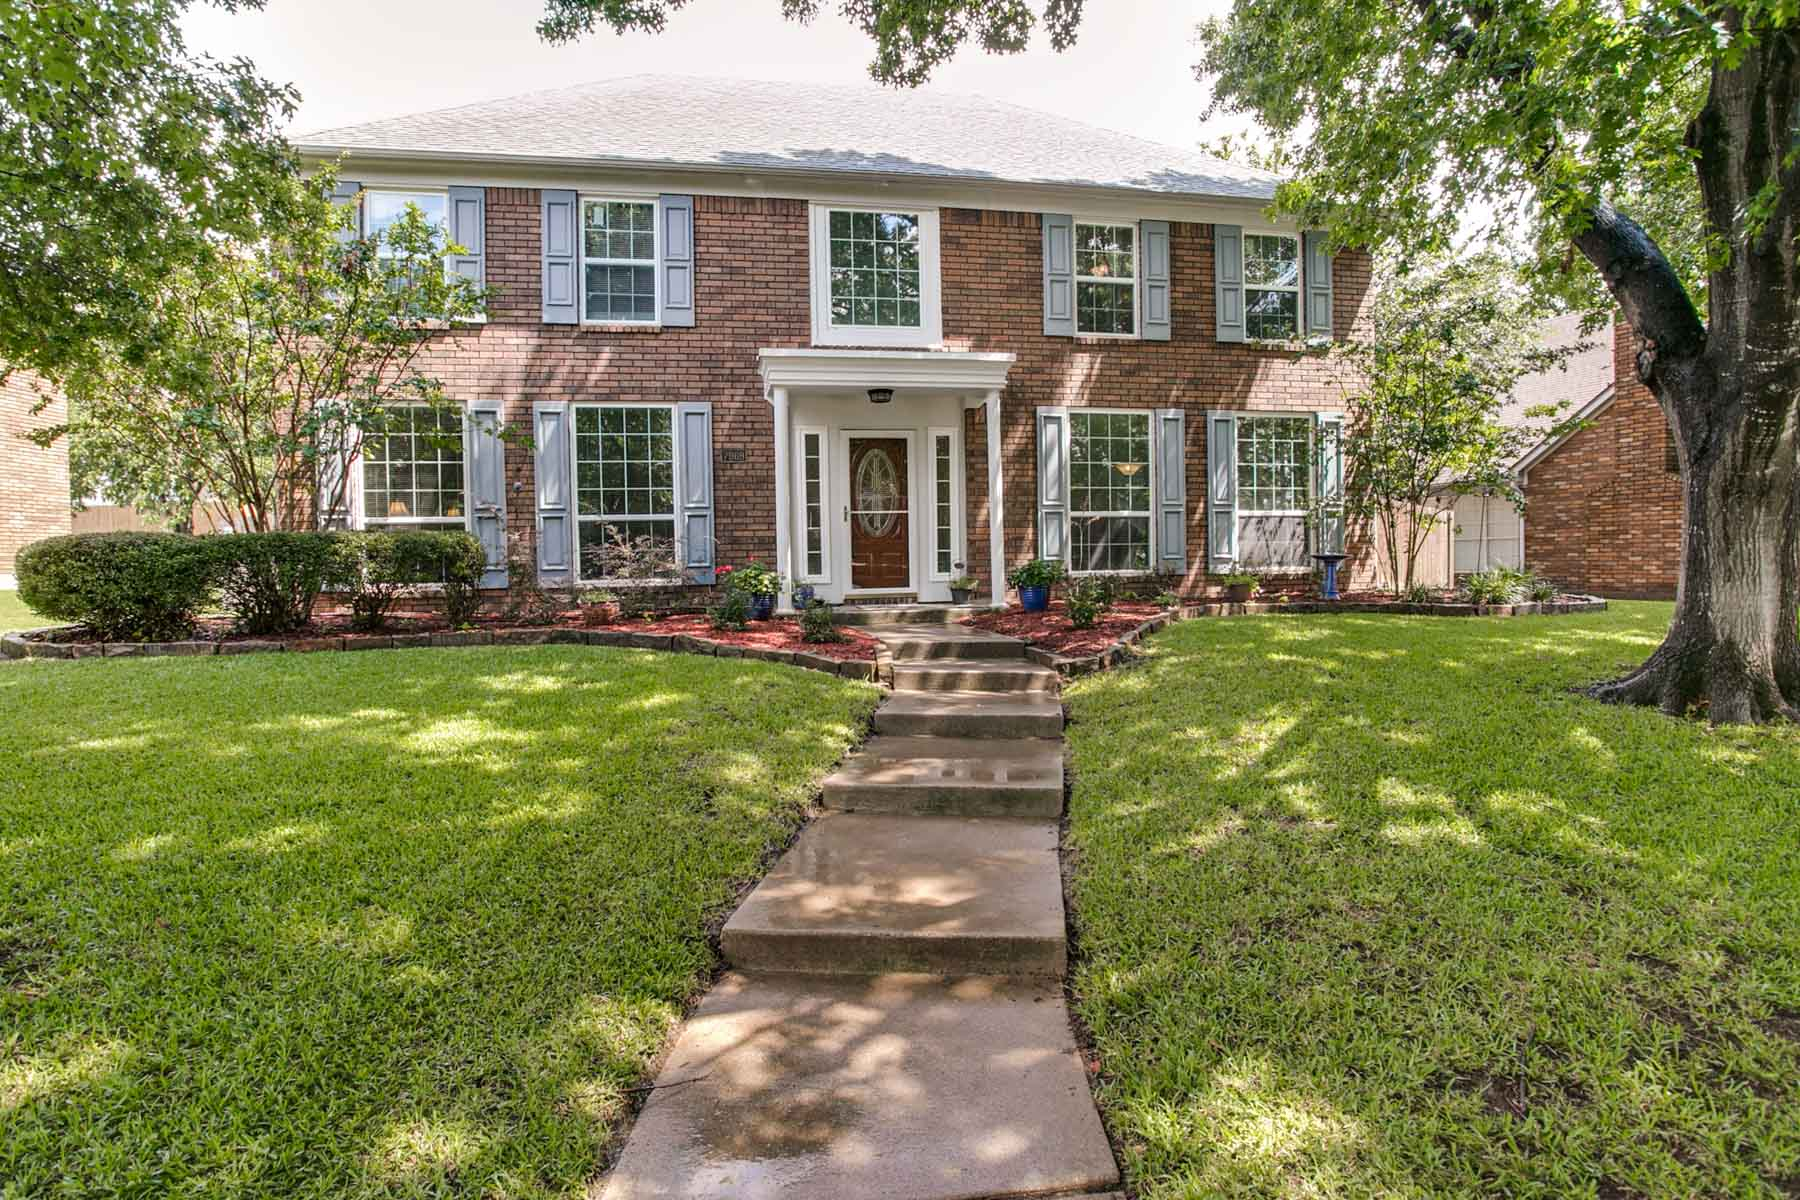 Single Family Home for Sale at Traditional Home in Summer Creek 7969 Morning Lane Fort Worth, Texas, 76123 United States